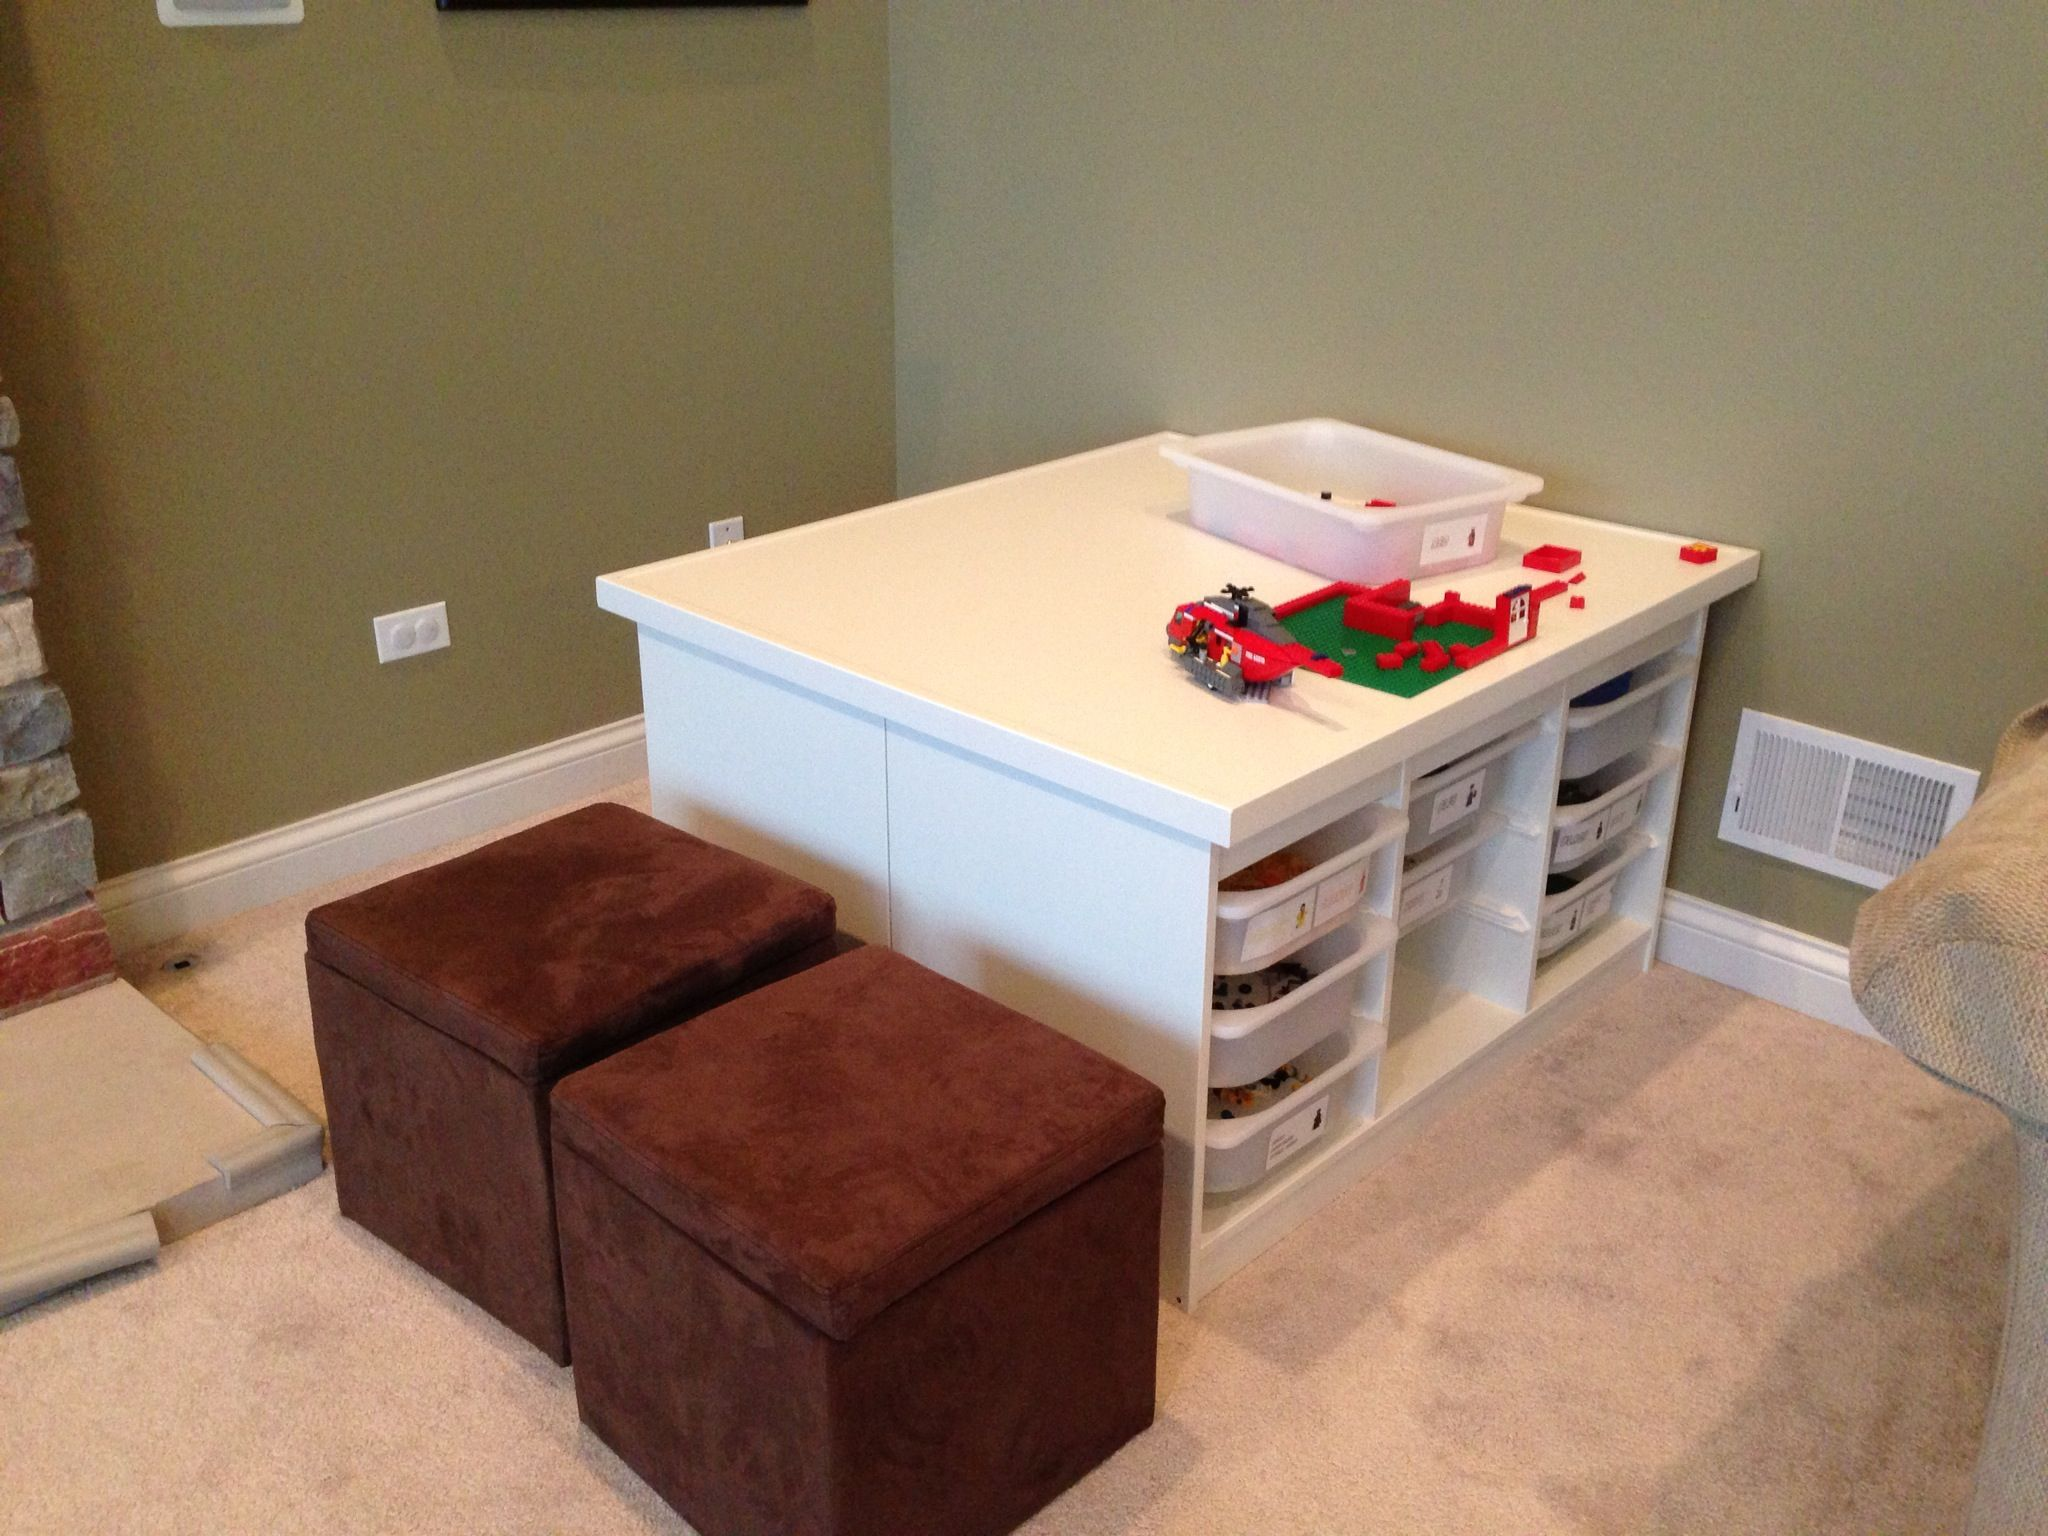 2 Ikea Trofast units back to back with an MDF table top Great for